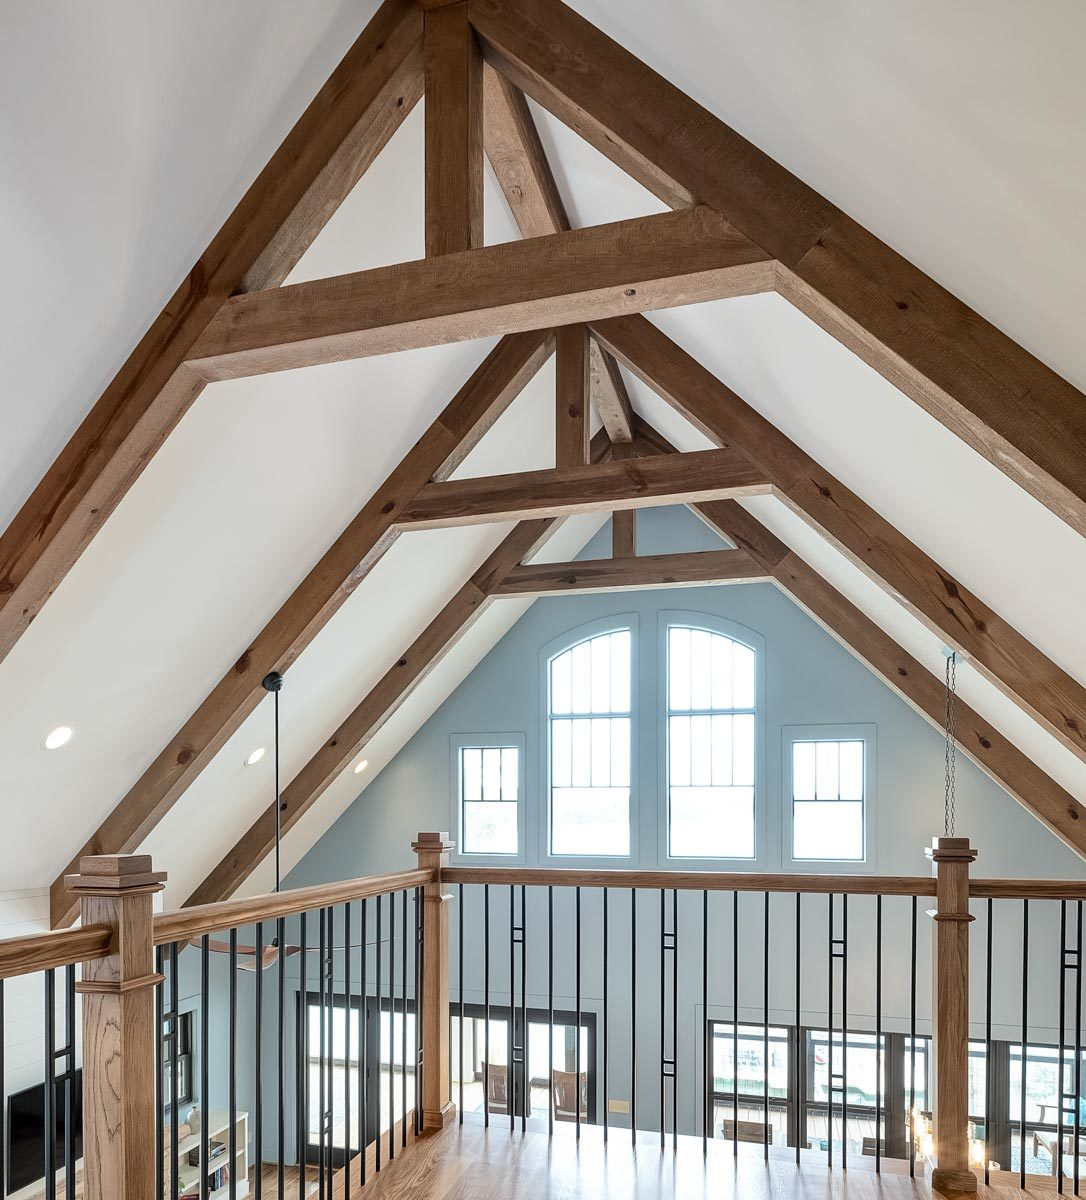 Exposed trusses lining the cathedral ceiling add a character to the interior.